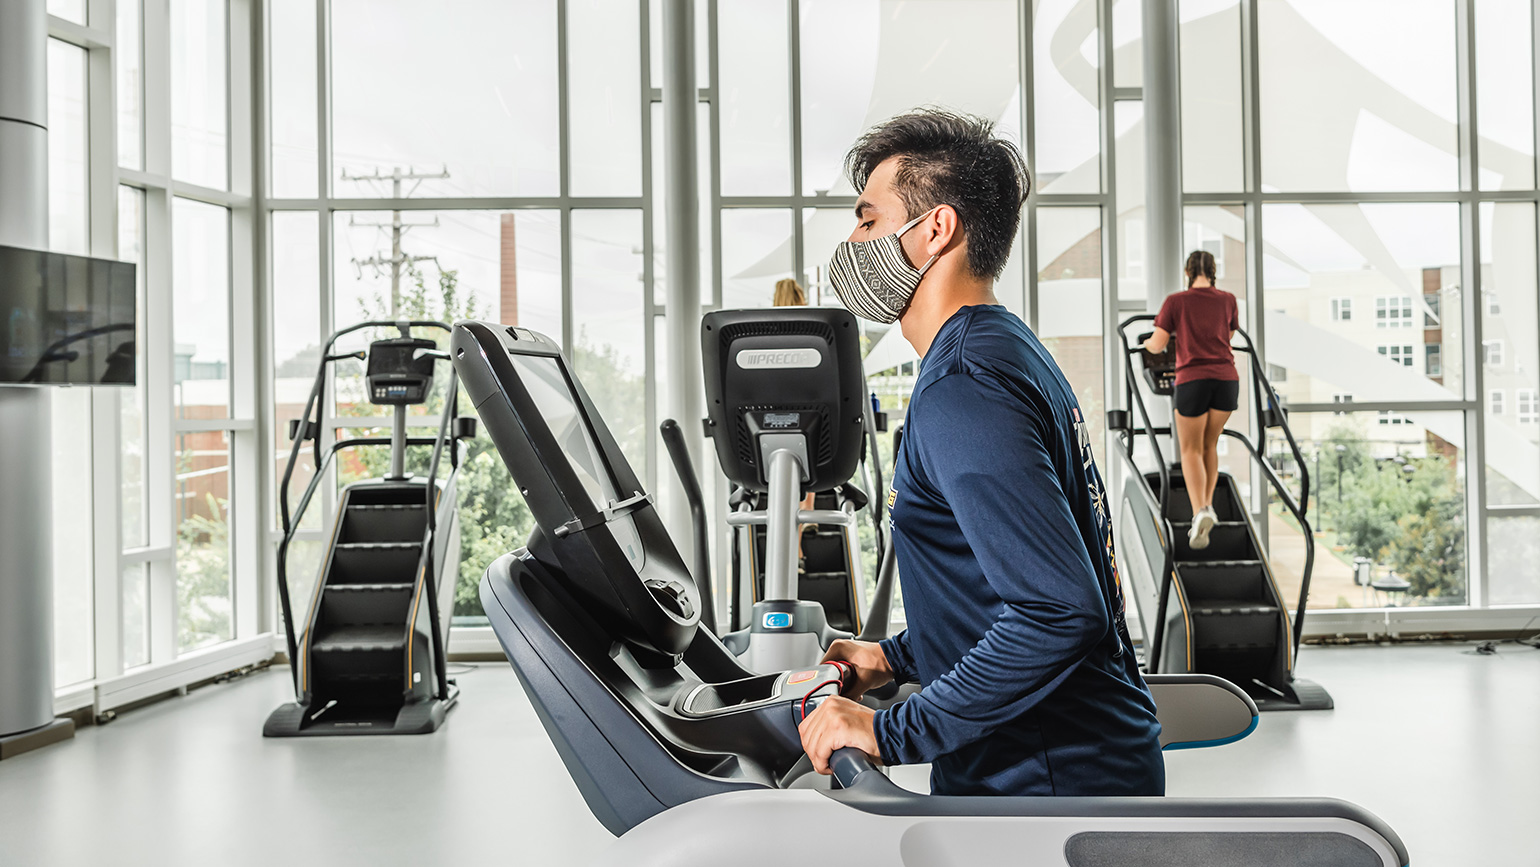 Photo of masked students using cardio equipment in gym